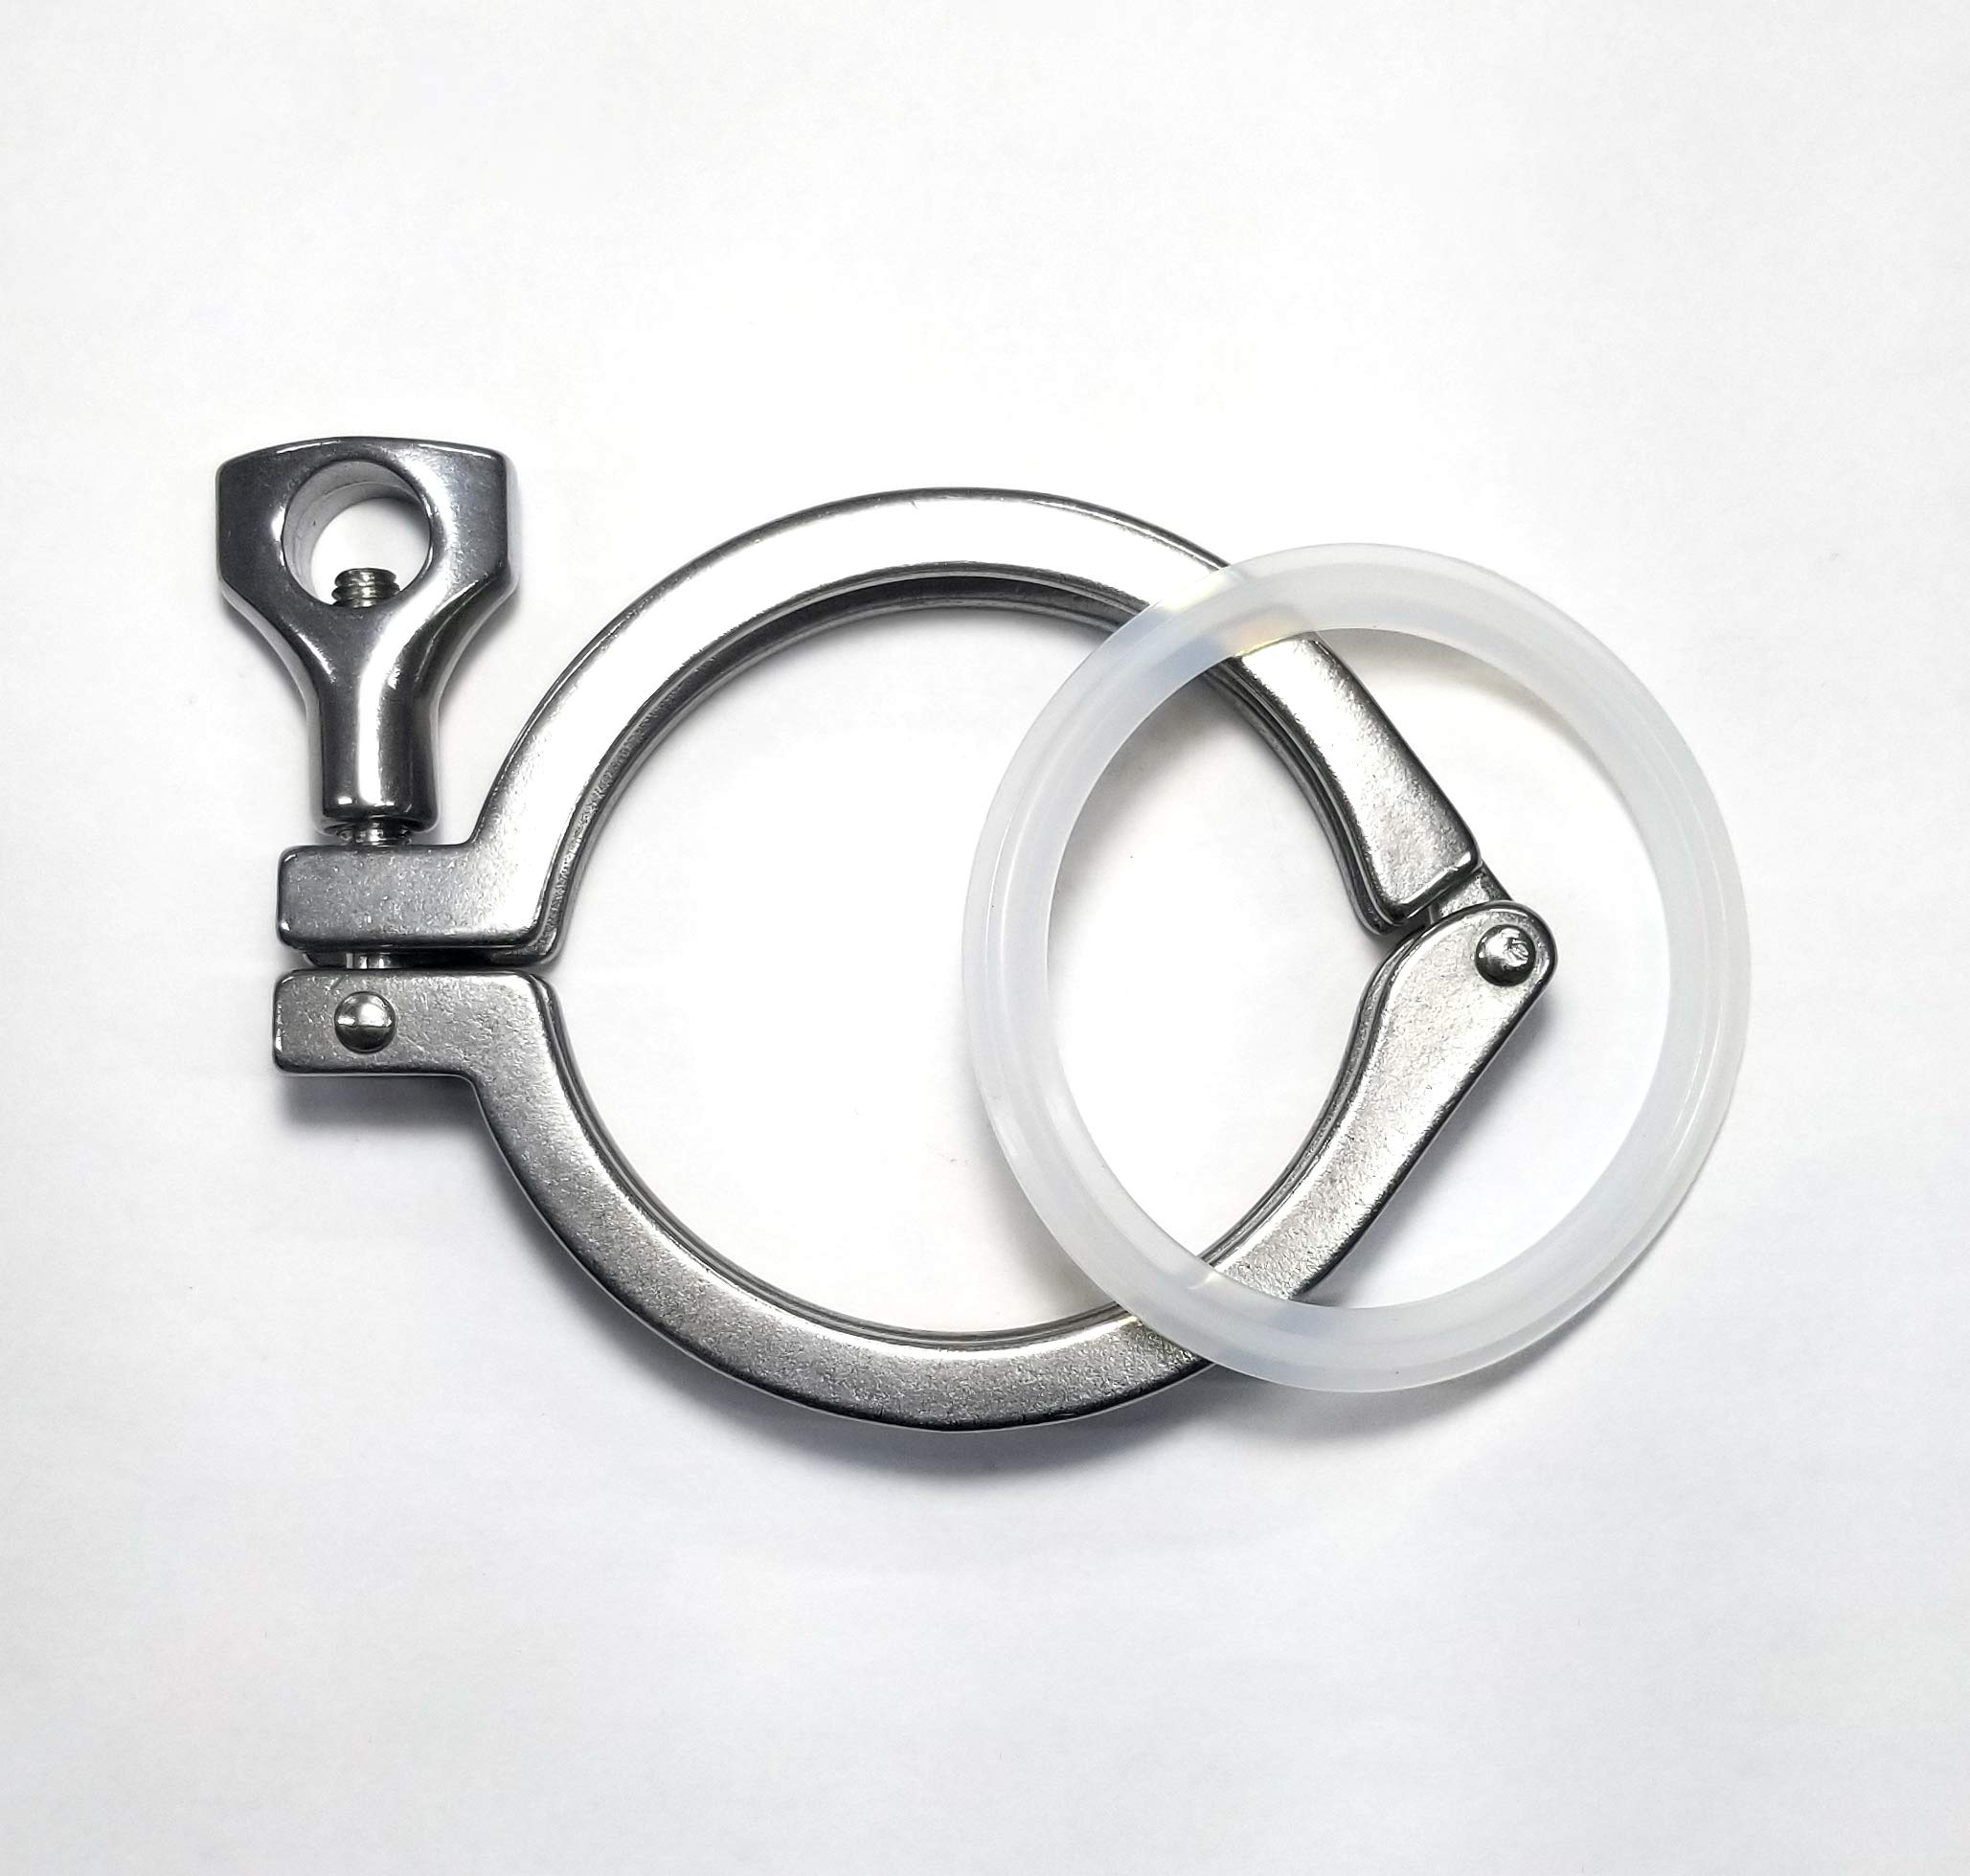 Stainless Sanitary Clamp - Tri-Clover 3'' Tube OD - Heavy Duty Single Pin w/Gasket (1 pc) - SS304 - Homebrew Clover Clamp by Stainless Bros